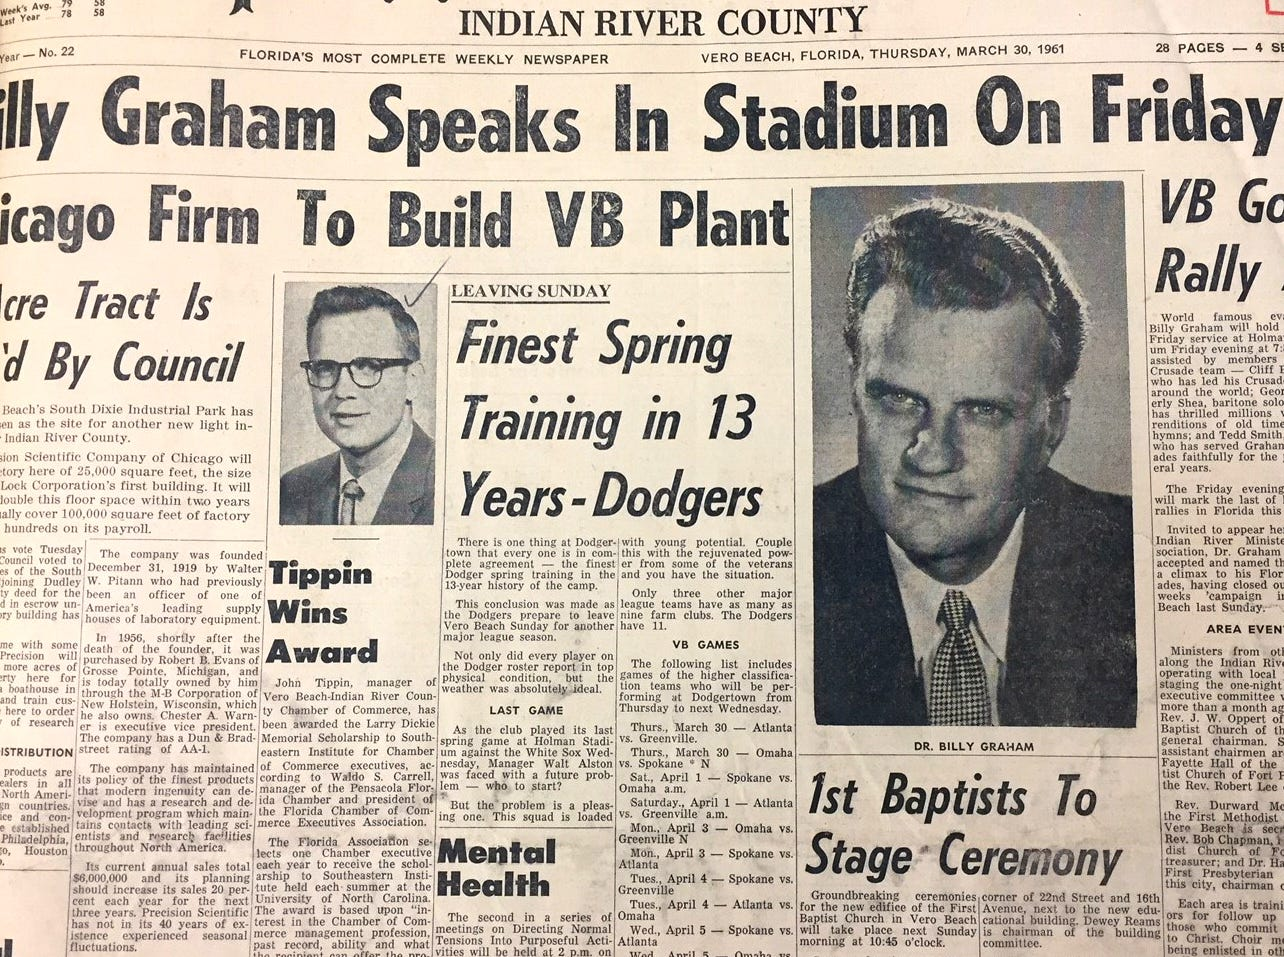 March 30, 1961, Press Journal front page